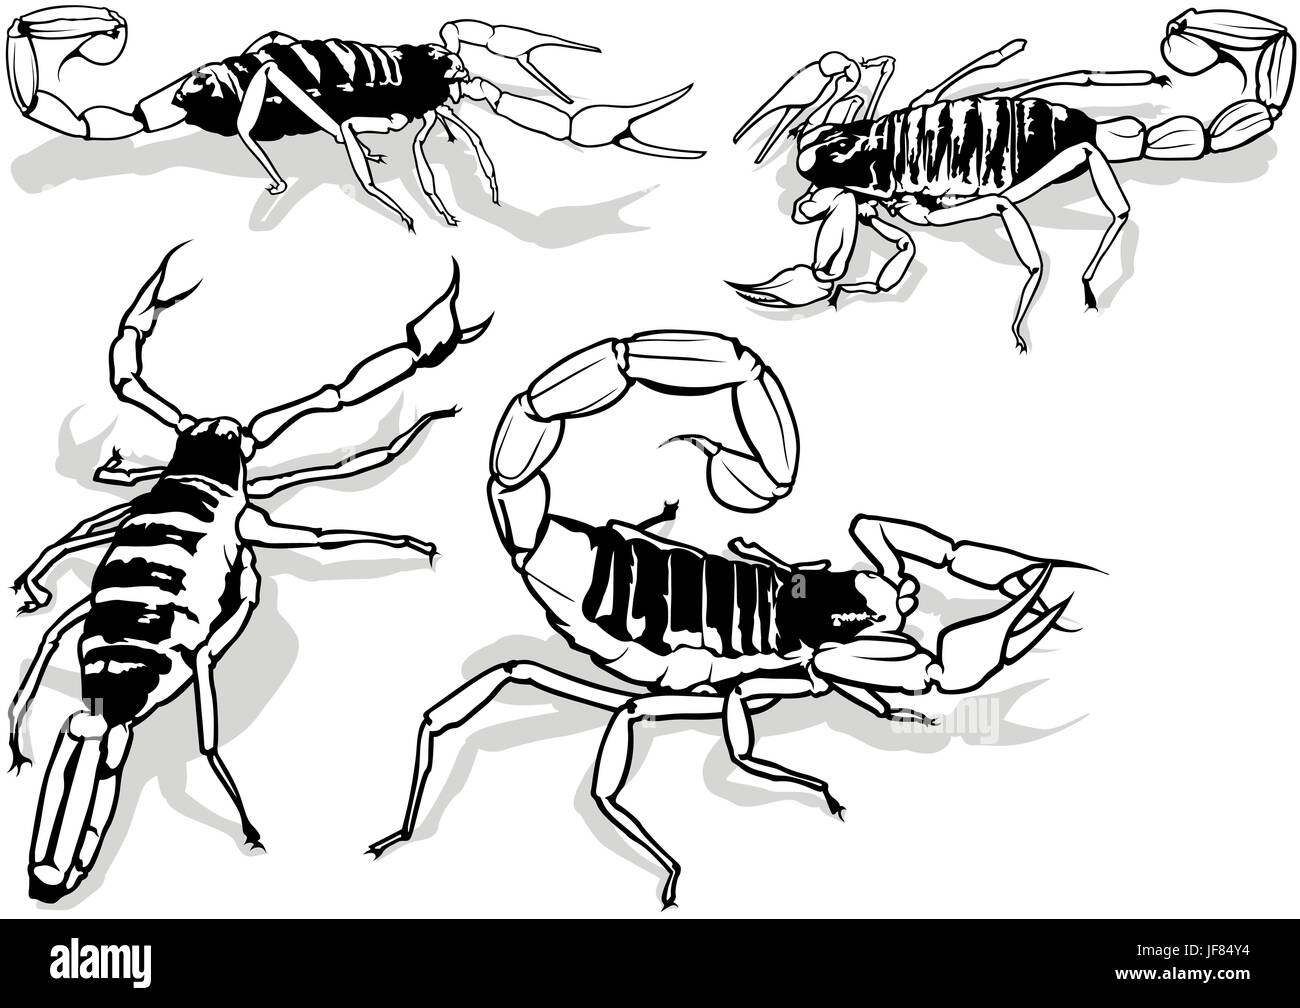 Desert Hairy Scorpion Stock Vector Art Illustration Vector Image